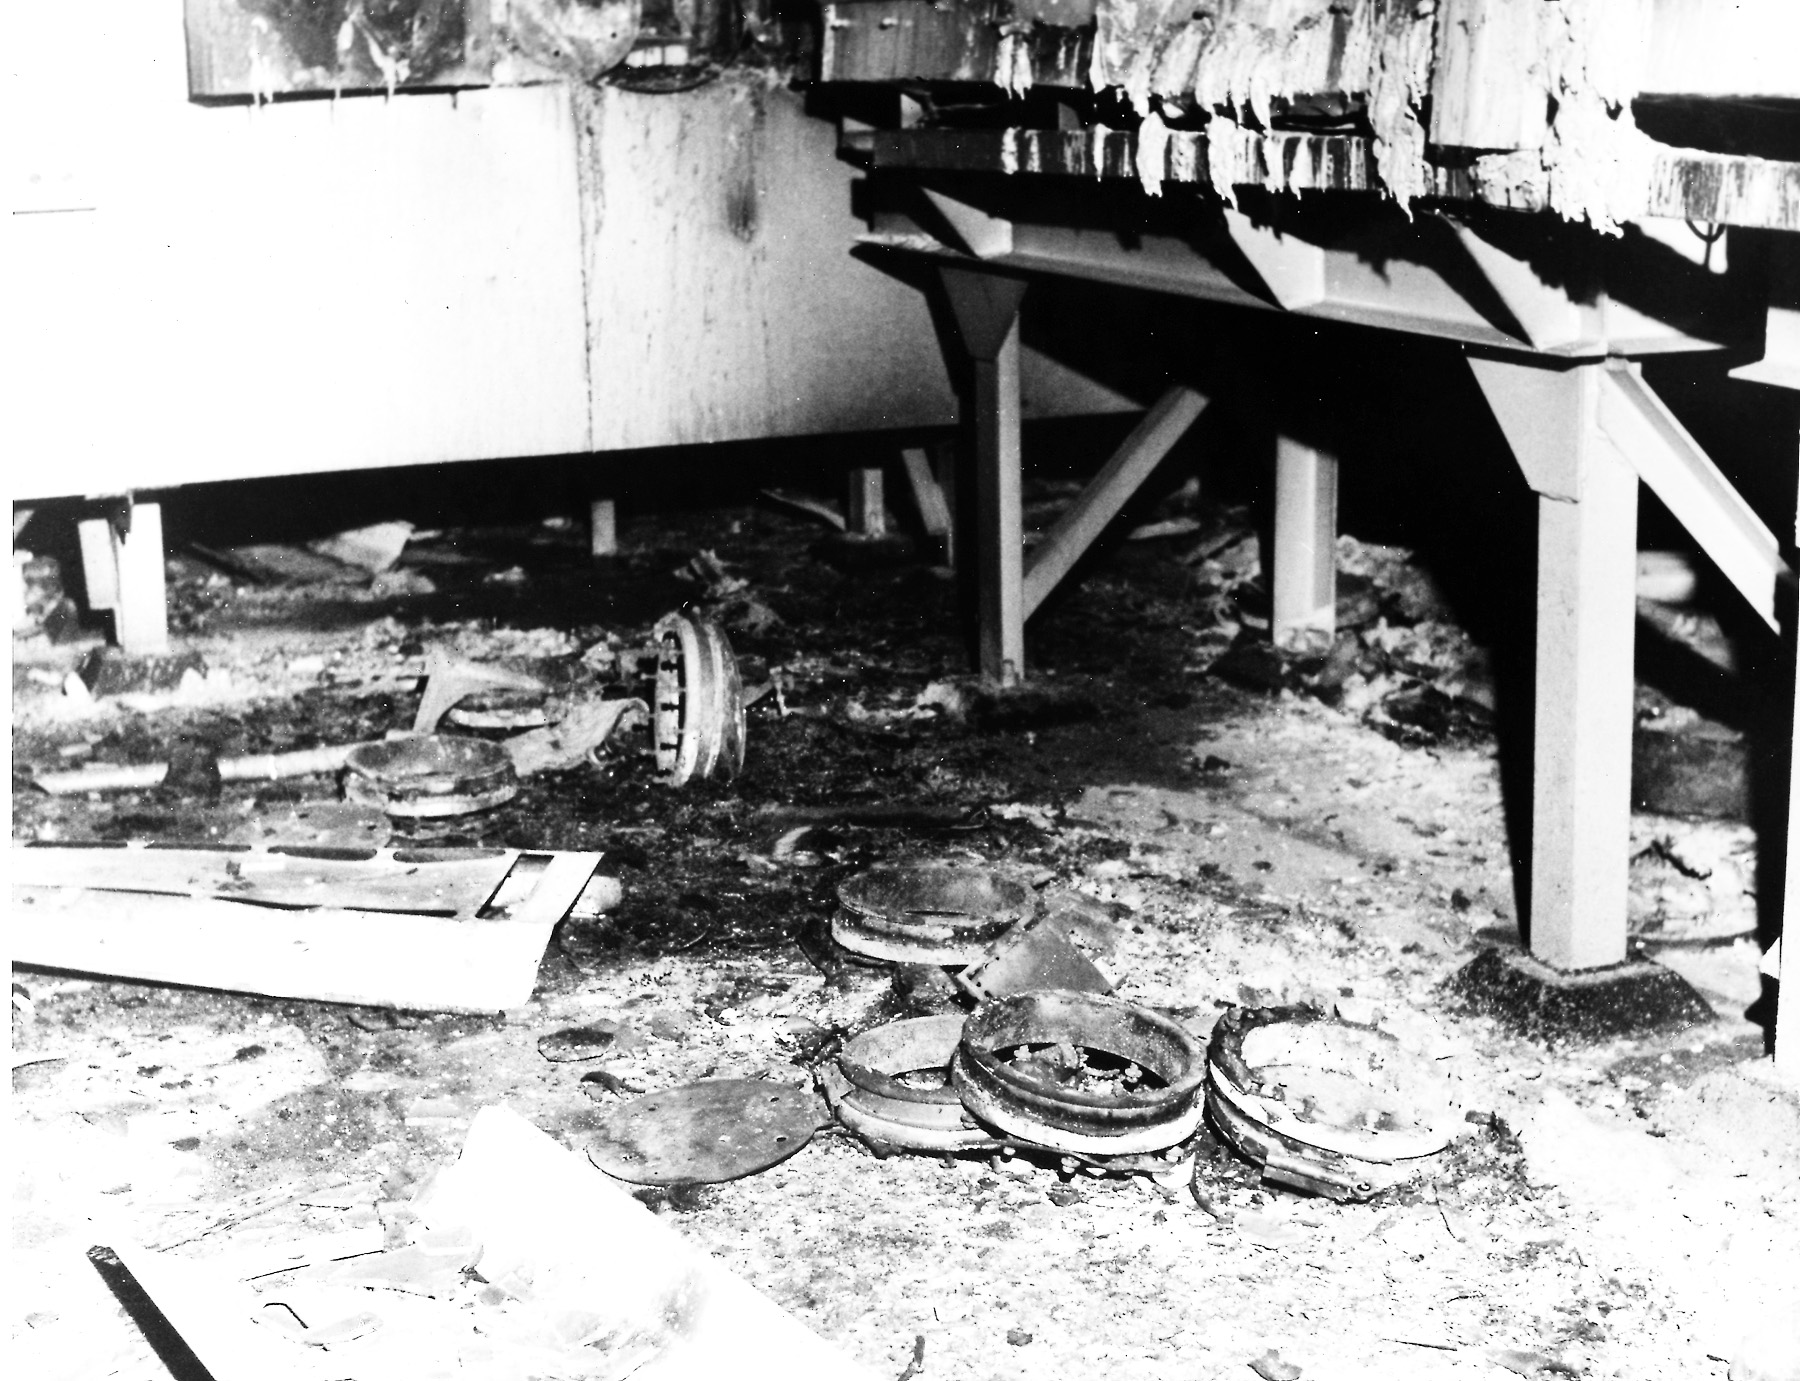 Black and white image of damage to a glove box from the 1969 fire at Rocky Flats